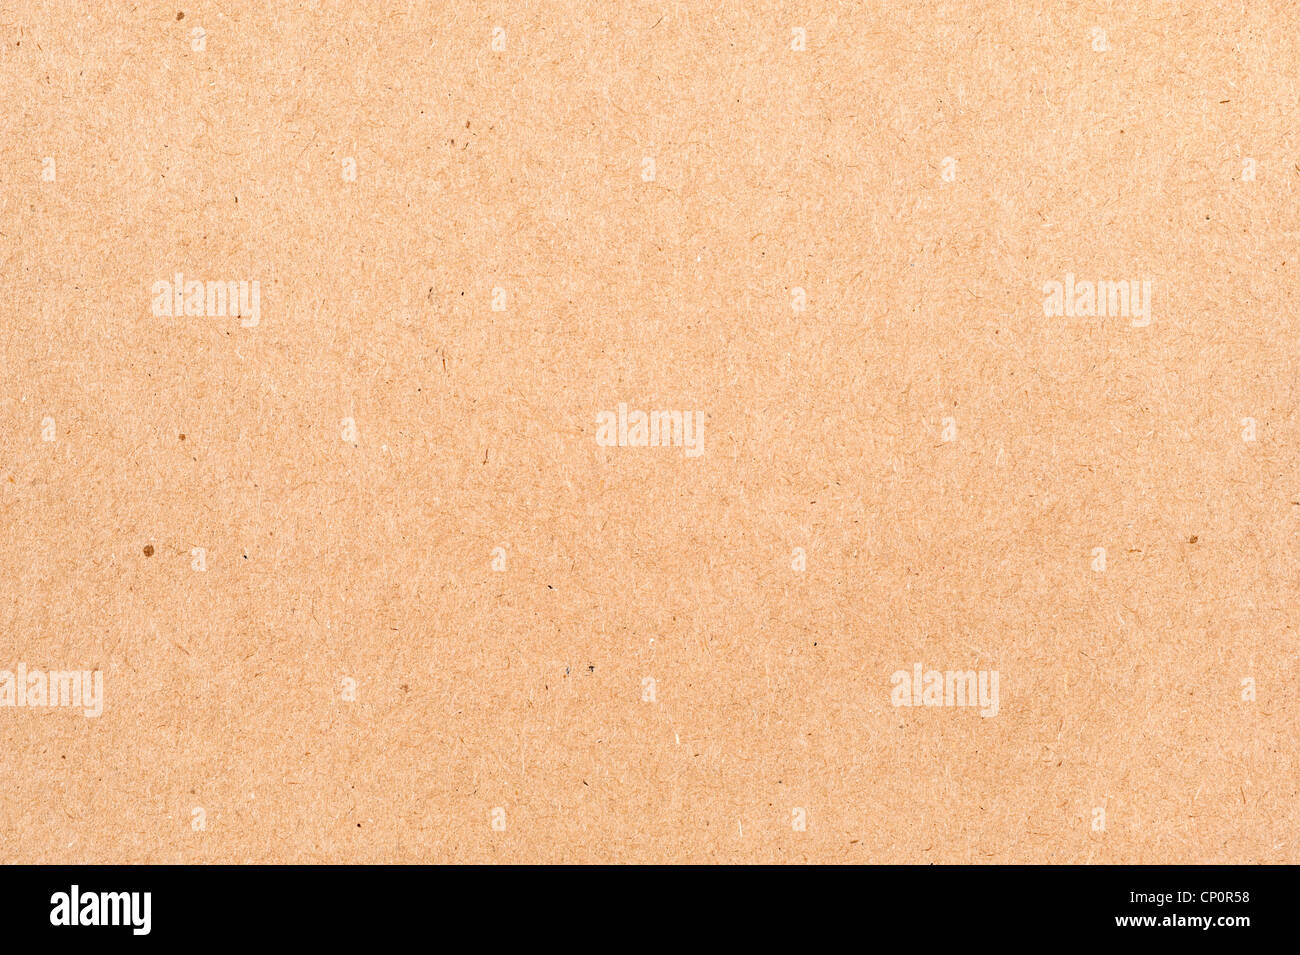 Close up of the side of a new cardboard box. Mainly for background use and design element. - Stock Image